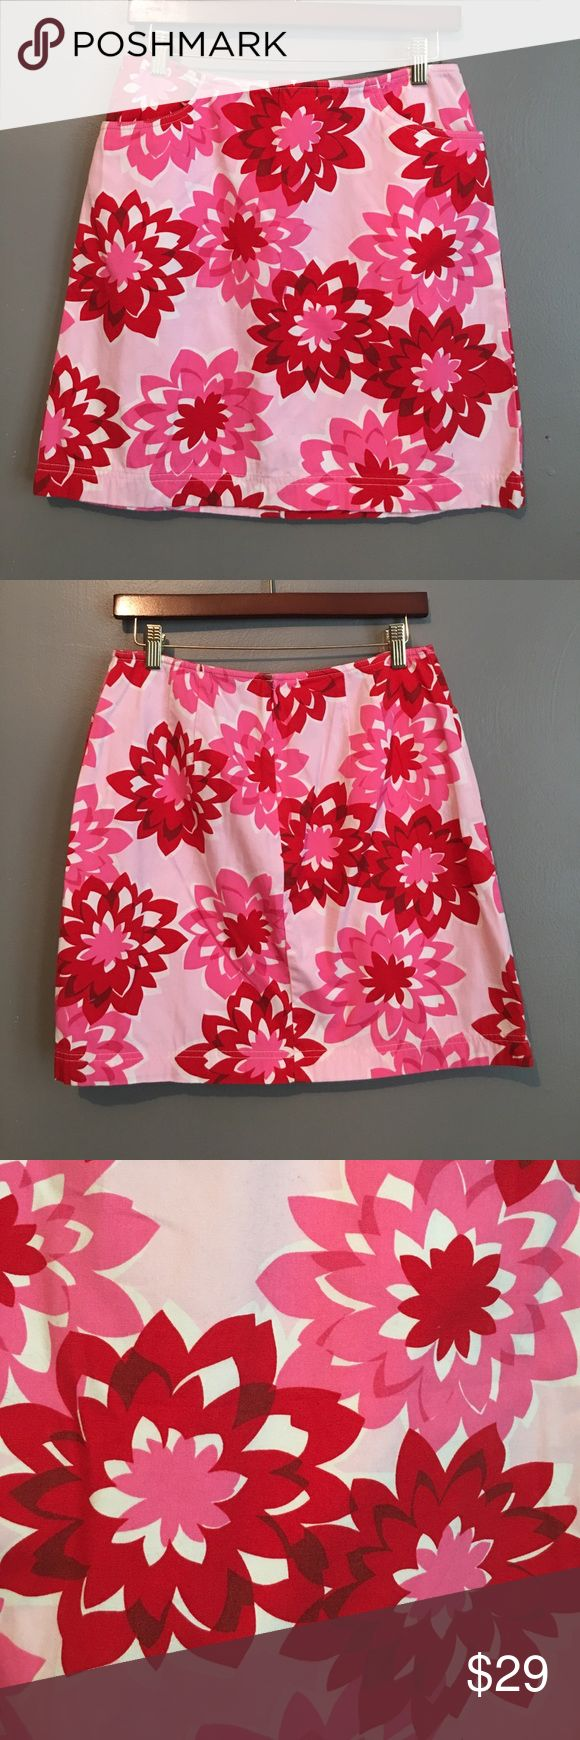 Ann Taylor LOFT Skirt Ann Taylor Loft Floral Skirt, Size 6. 100% cotton. Beautiful Skirt with flowers front and back. It has pockets on the sides, and a zipper on the back. As shown on photos. Perfect for the summer! Feel free to make an offer. No trades. LOFT Skirts